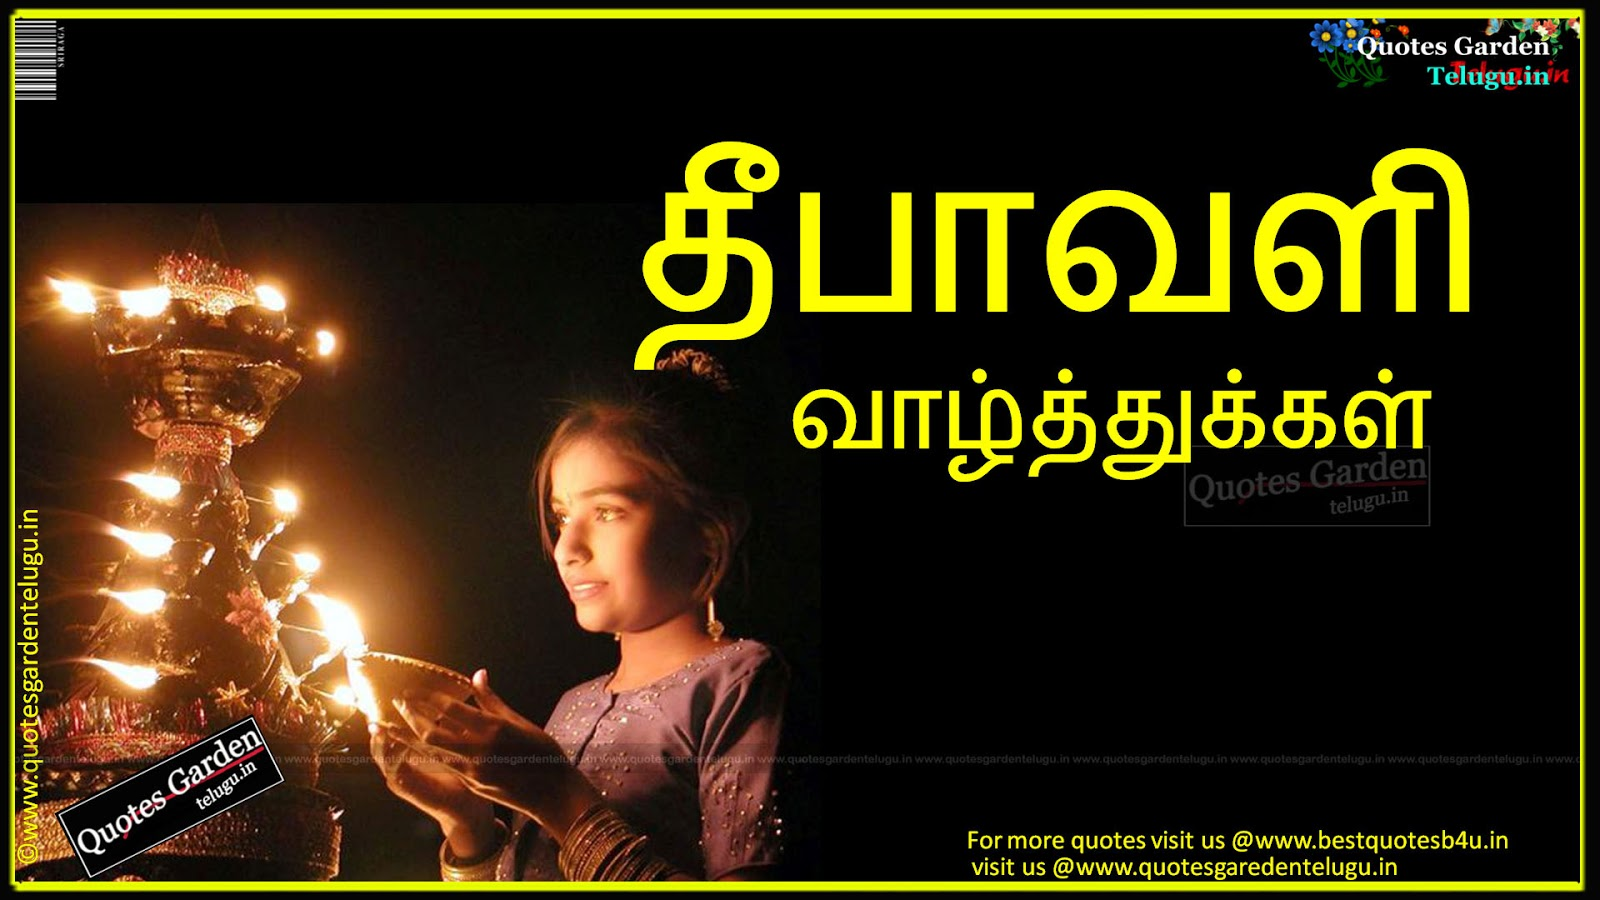 Deepavali Greetings Wishes Valthukkal In Tamil Quotes Garden